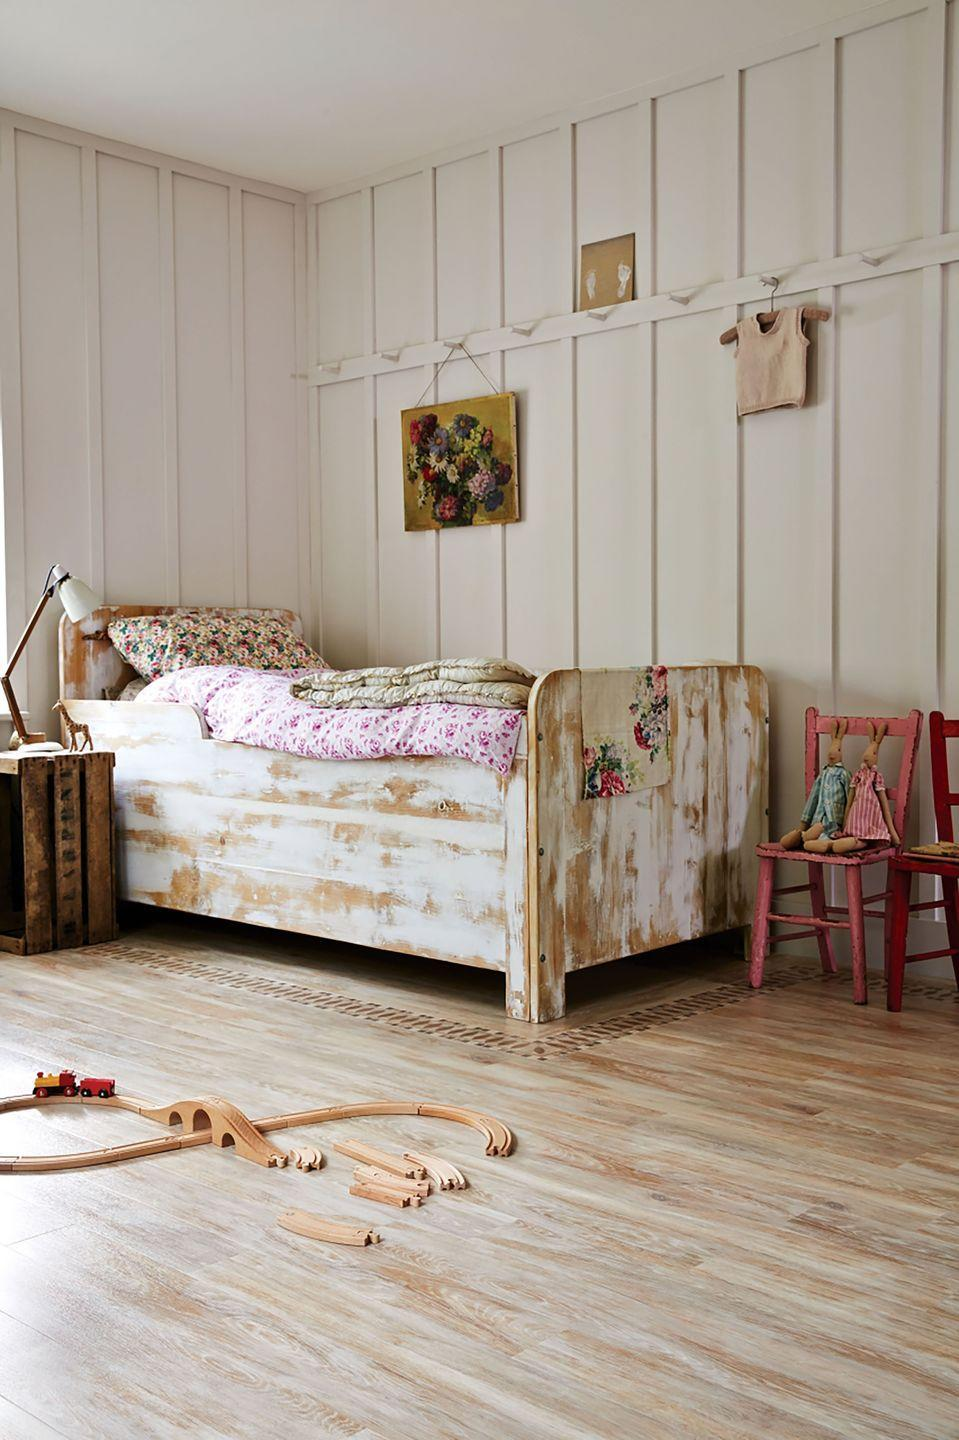 """<p>The modern rustic trend has been around for a few years now and shows no sign of abating. As seen here, it works really well for a girls' bedroom idea. It's all about creating a characterful feel – the panelling on the walls, reclaimed wood-style bed, and the upturned crate used as a bedside table. Add in vintage finds like old paintings and kids' chairs from car boot sales. A lick of paint will work wonders and will add colour to the scheme.</p><p>Pictured: Amtico lime washed wood flooring with Ellipse and Square borders and corners, <a href=""""https://www.amtico.com/flooring/products/product-search/AR0W7660/"""" rel=""""nofollow noopener"""" target=""""_blank"""" data-ylk=""""slk:Amtico"""" class=""""link rapid-noclick-resp"""">Amtico</a></p>"""